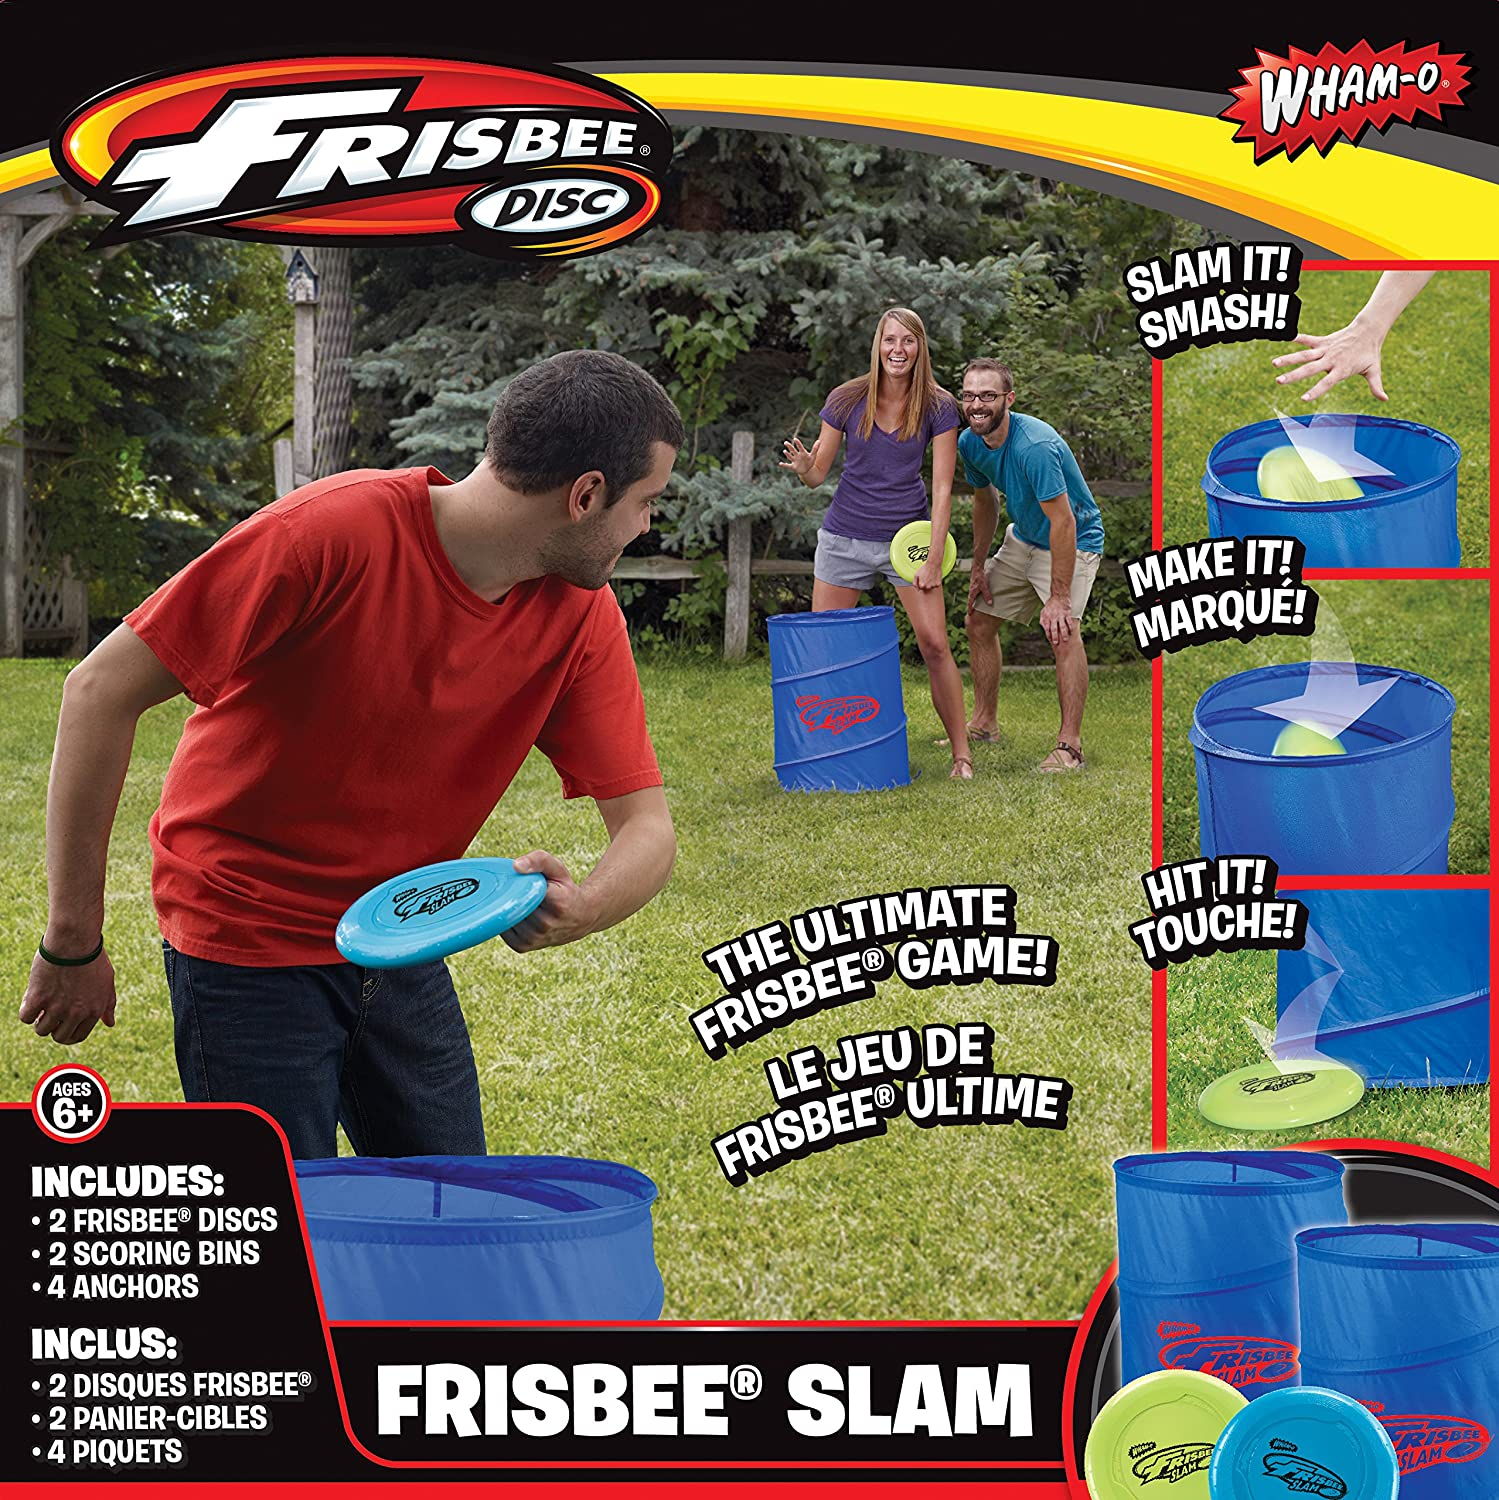 Wham-O Frisbee Game John N Hansen Co Inc 53275